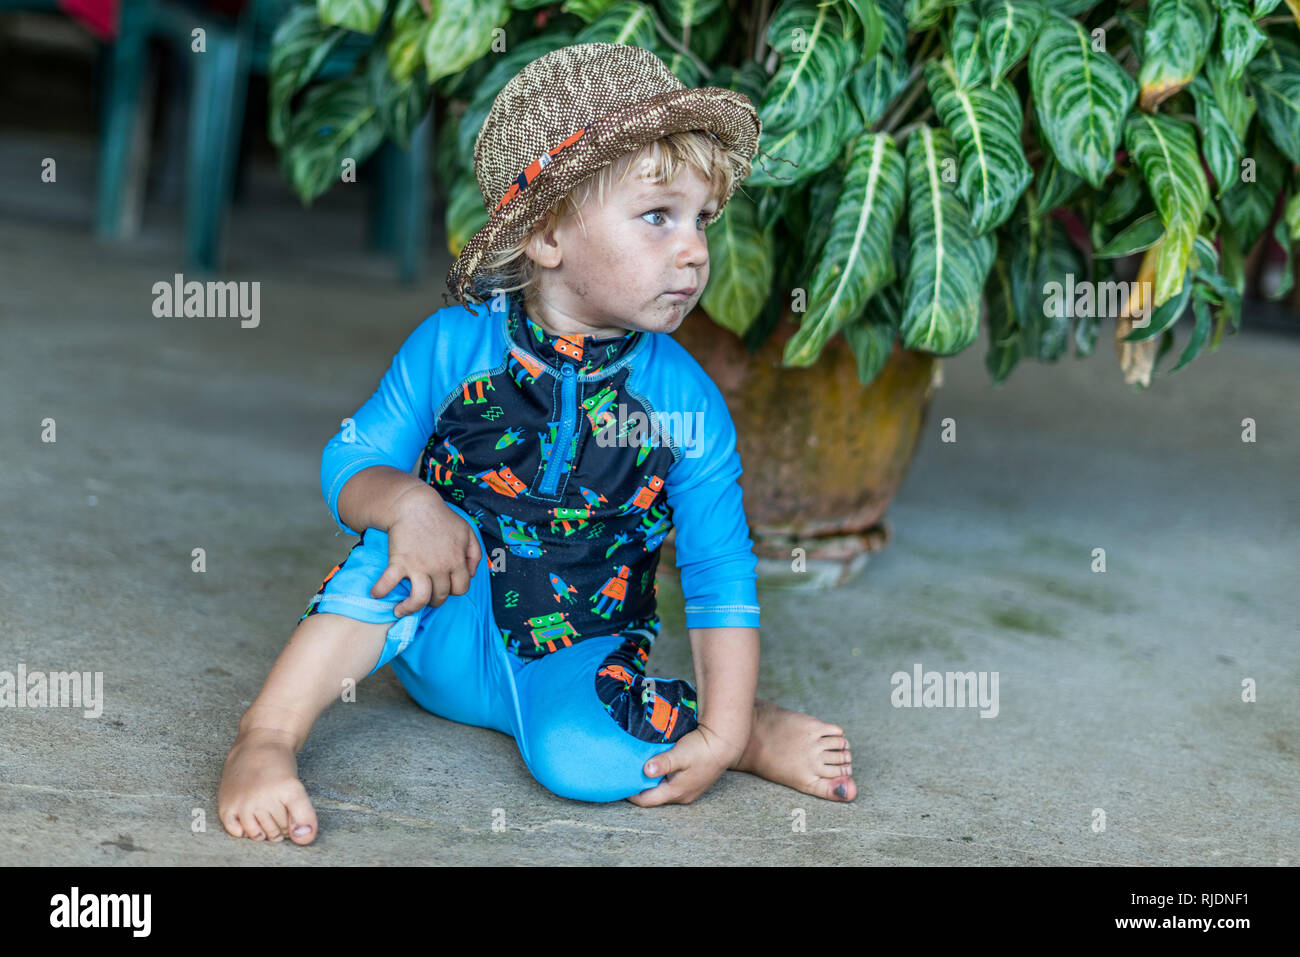 A nice portrait of a cute hat wearing baby boy posing in front of a beautiful tropical flower. The boy is wearing a UV protection suit. - Stock Image